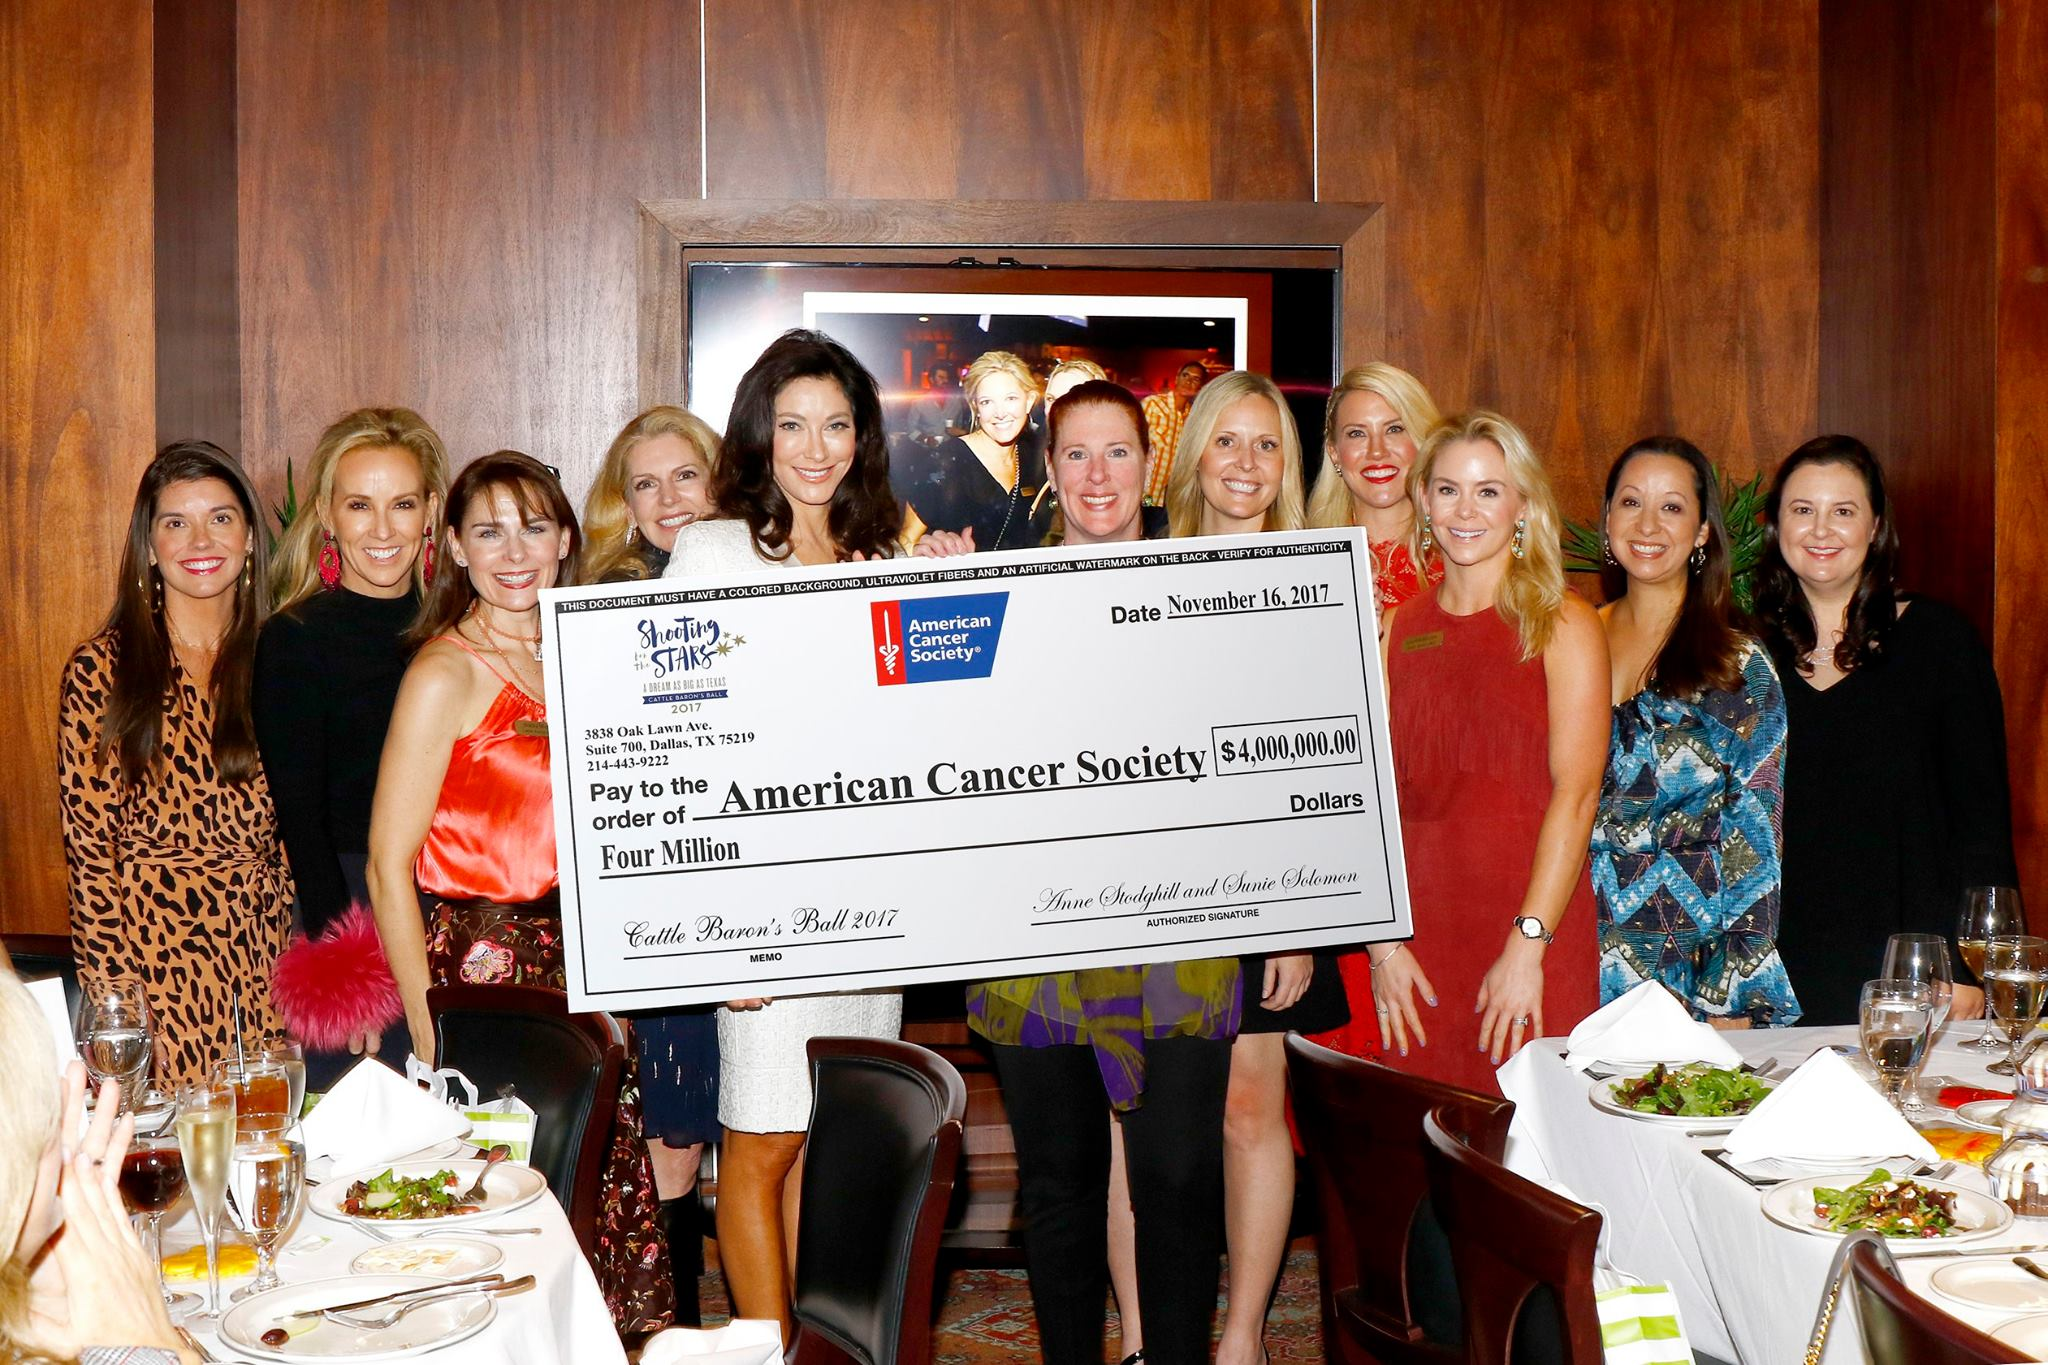 A group of women posing around a charitable donation of four million dollars to the American Cancer Society